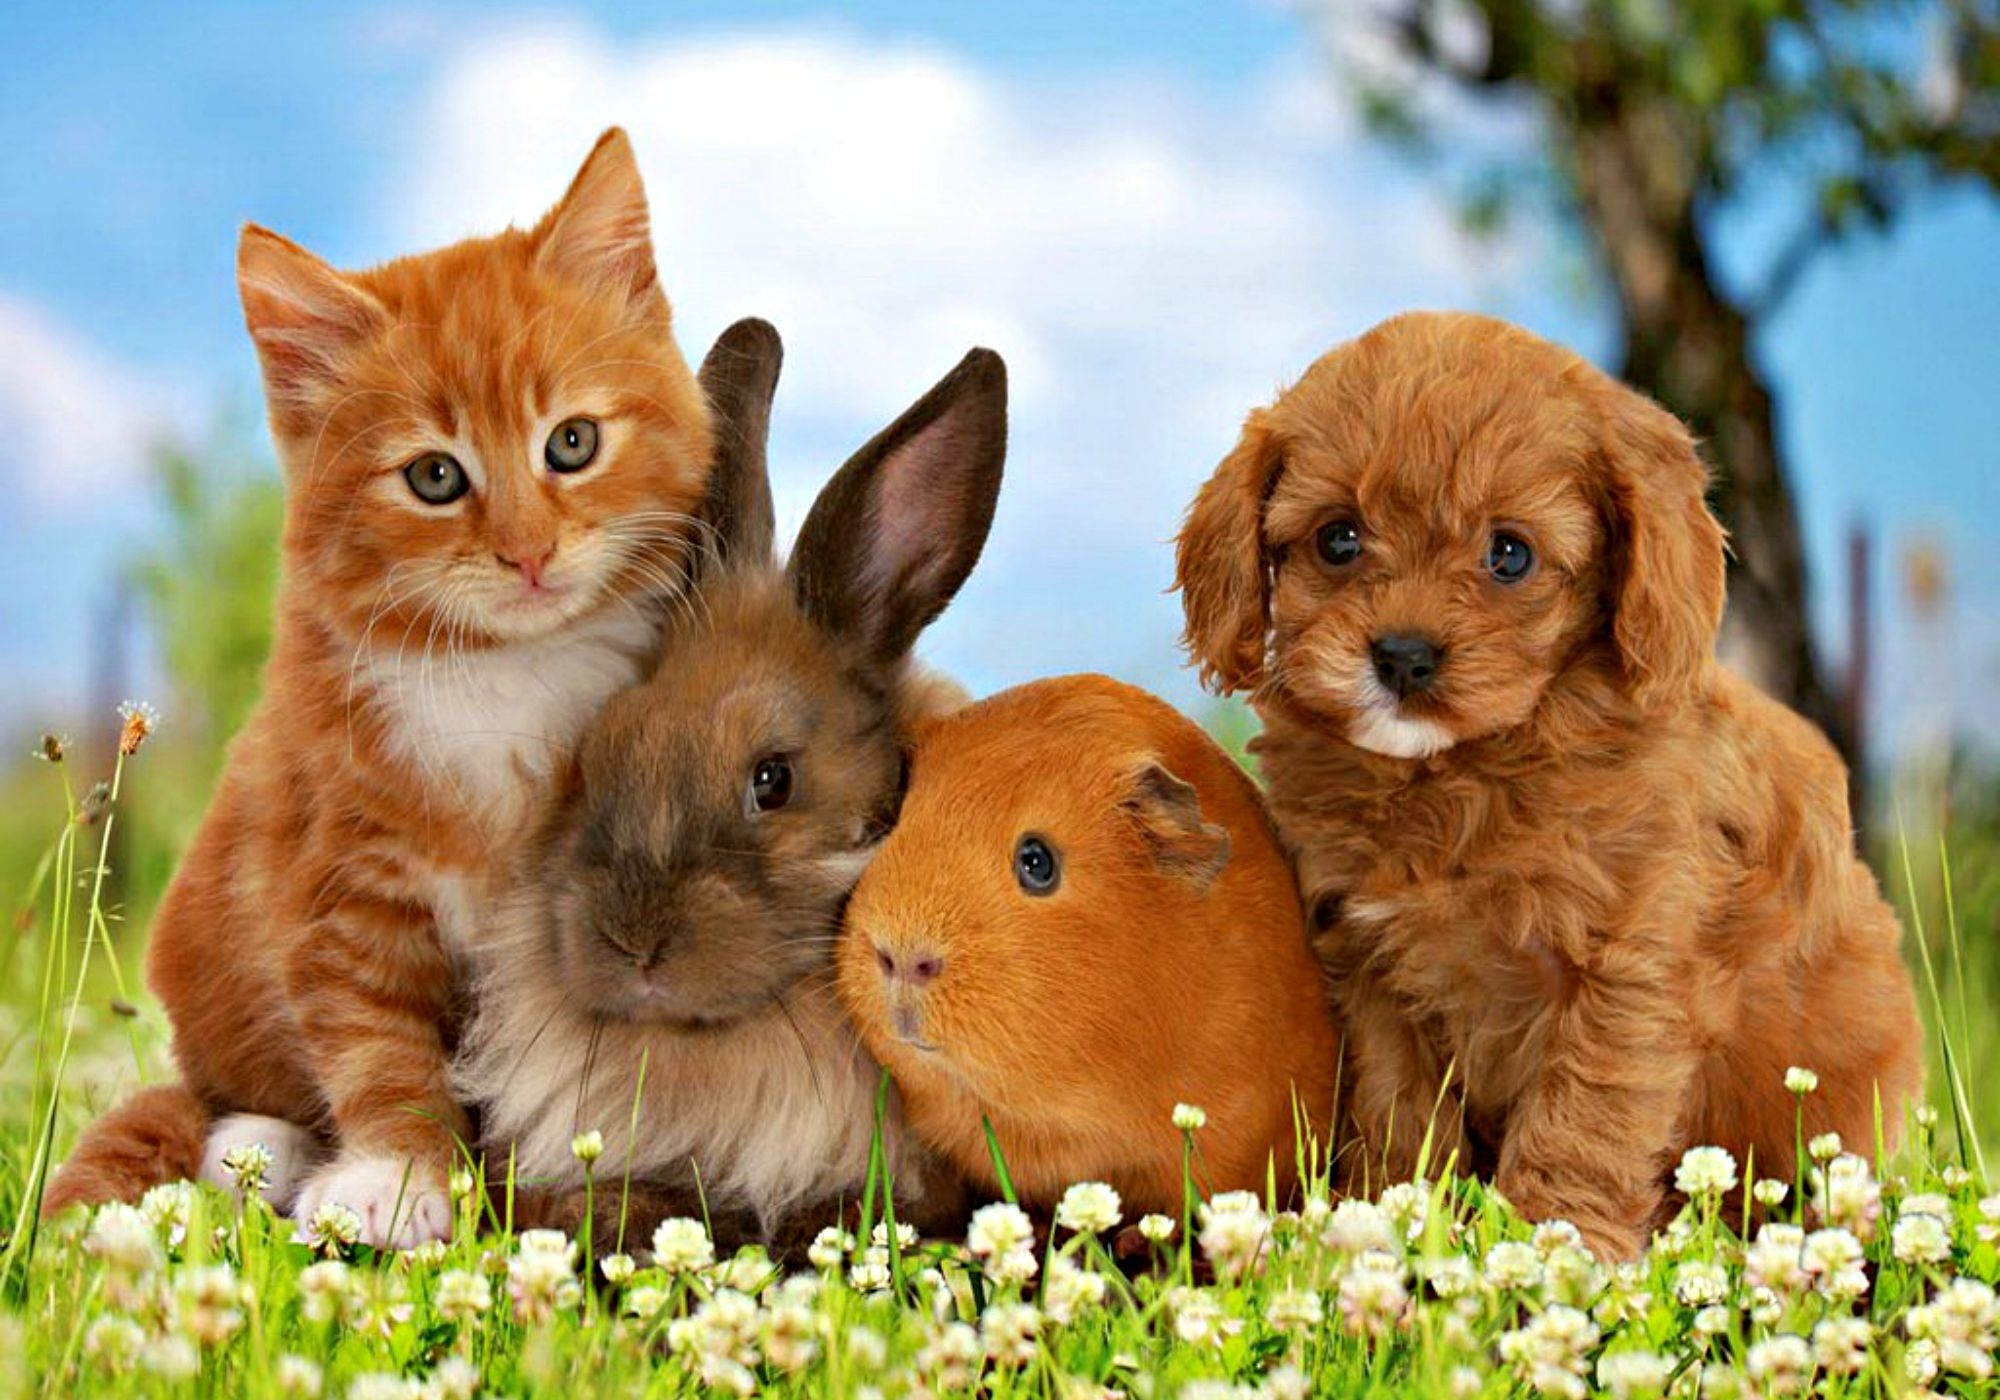 Dogs Cats And Bunnies